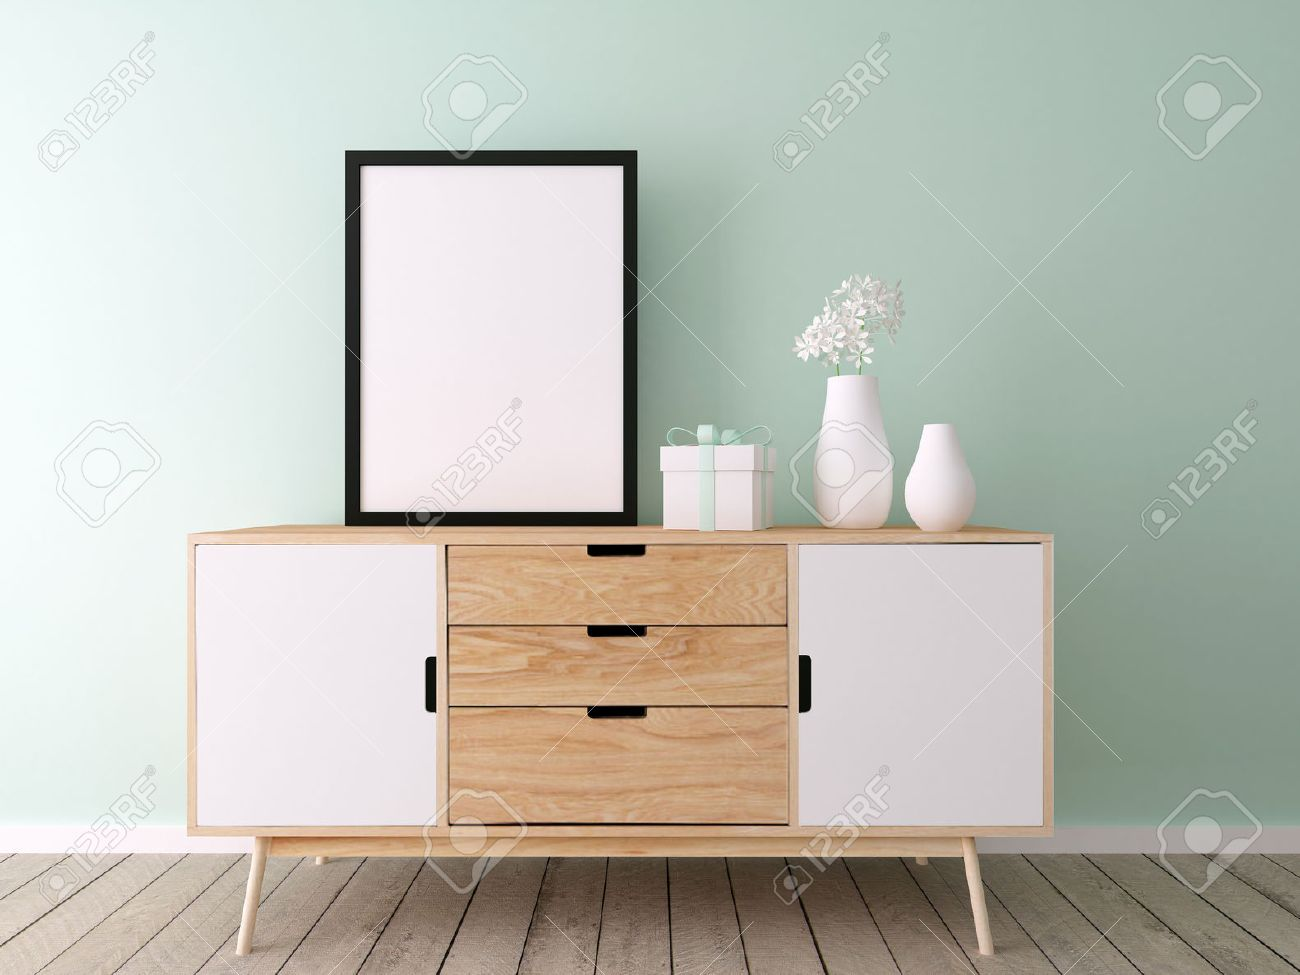 Book Cabinet Stock Photos. Royalty Free Book Cabinet Images And ...